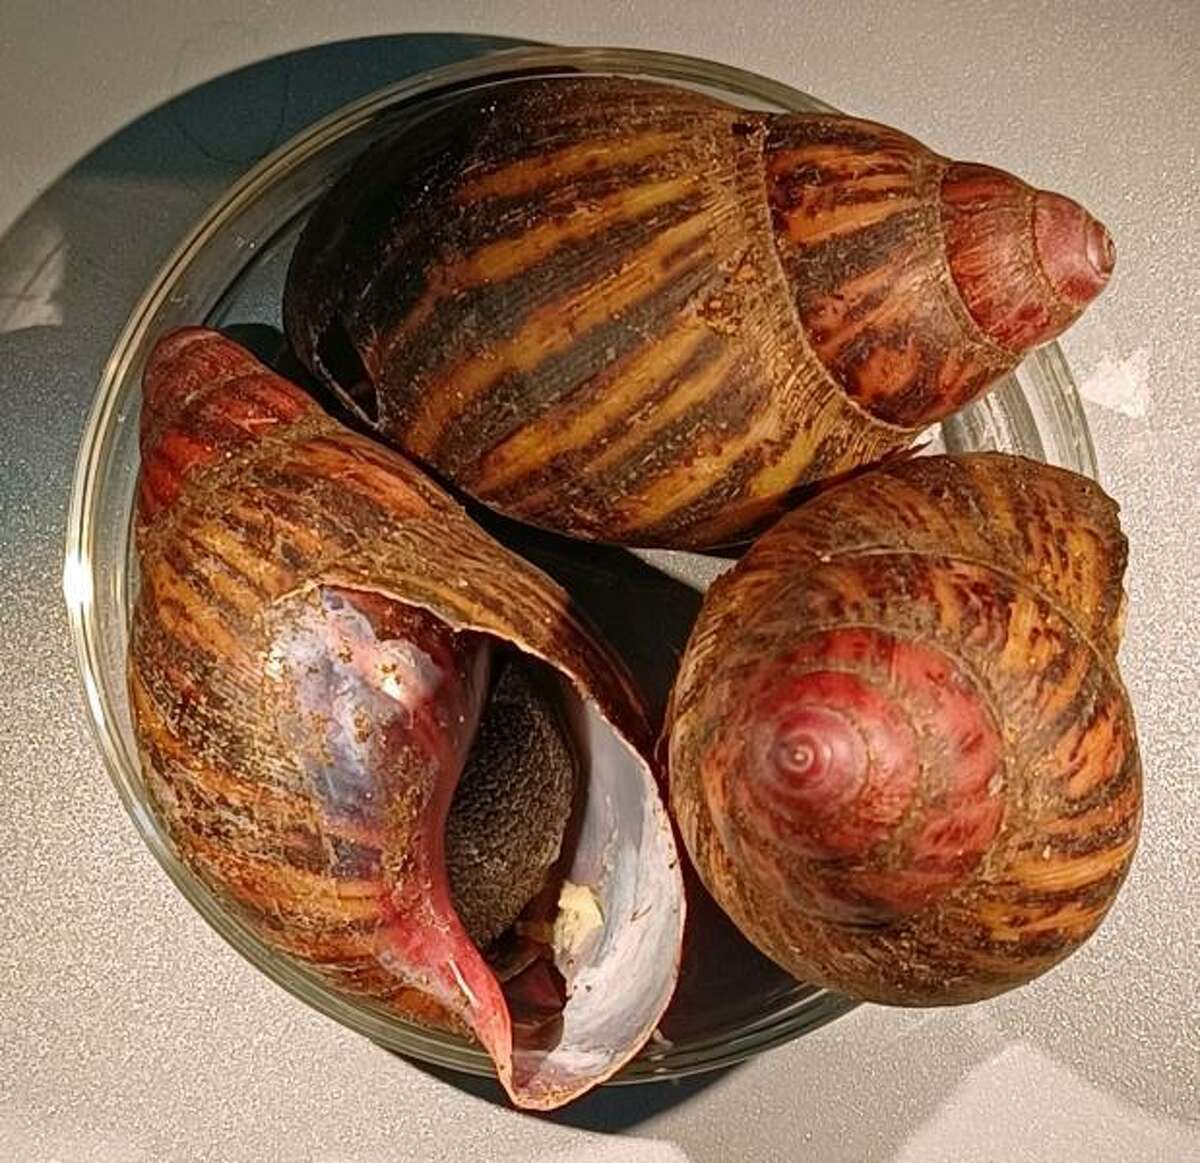 Also known as Banana Rasp Snails, they are considered a potentially serious threat and are an invasive species.